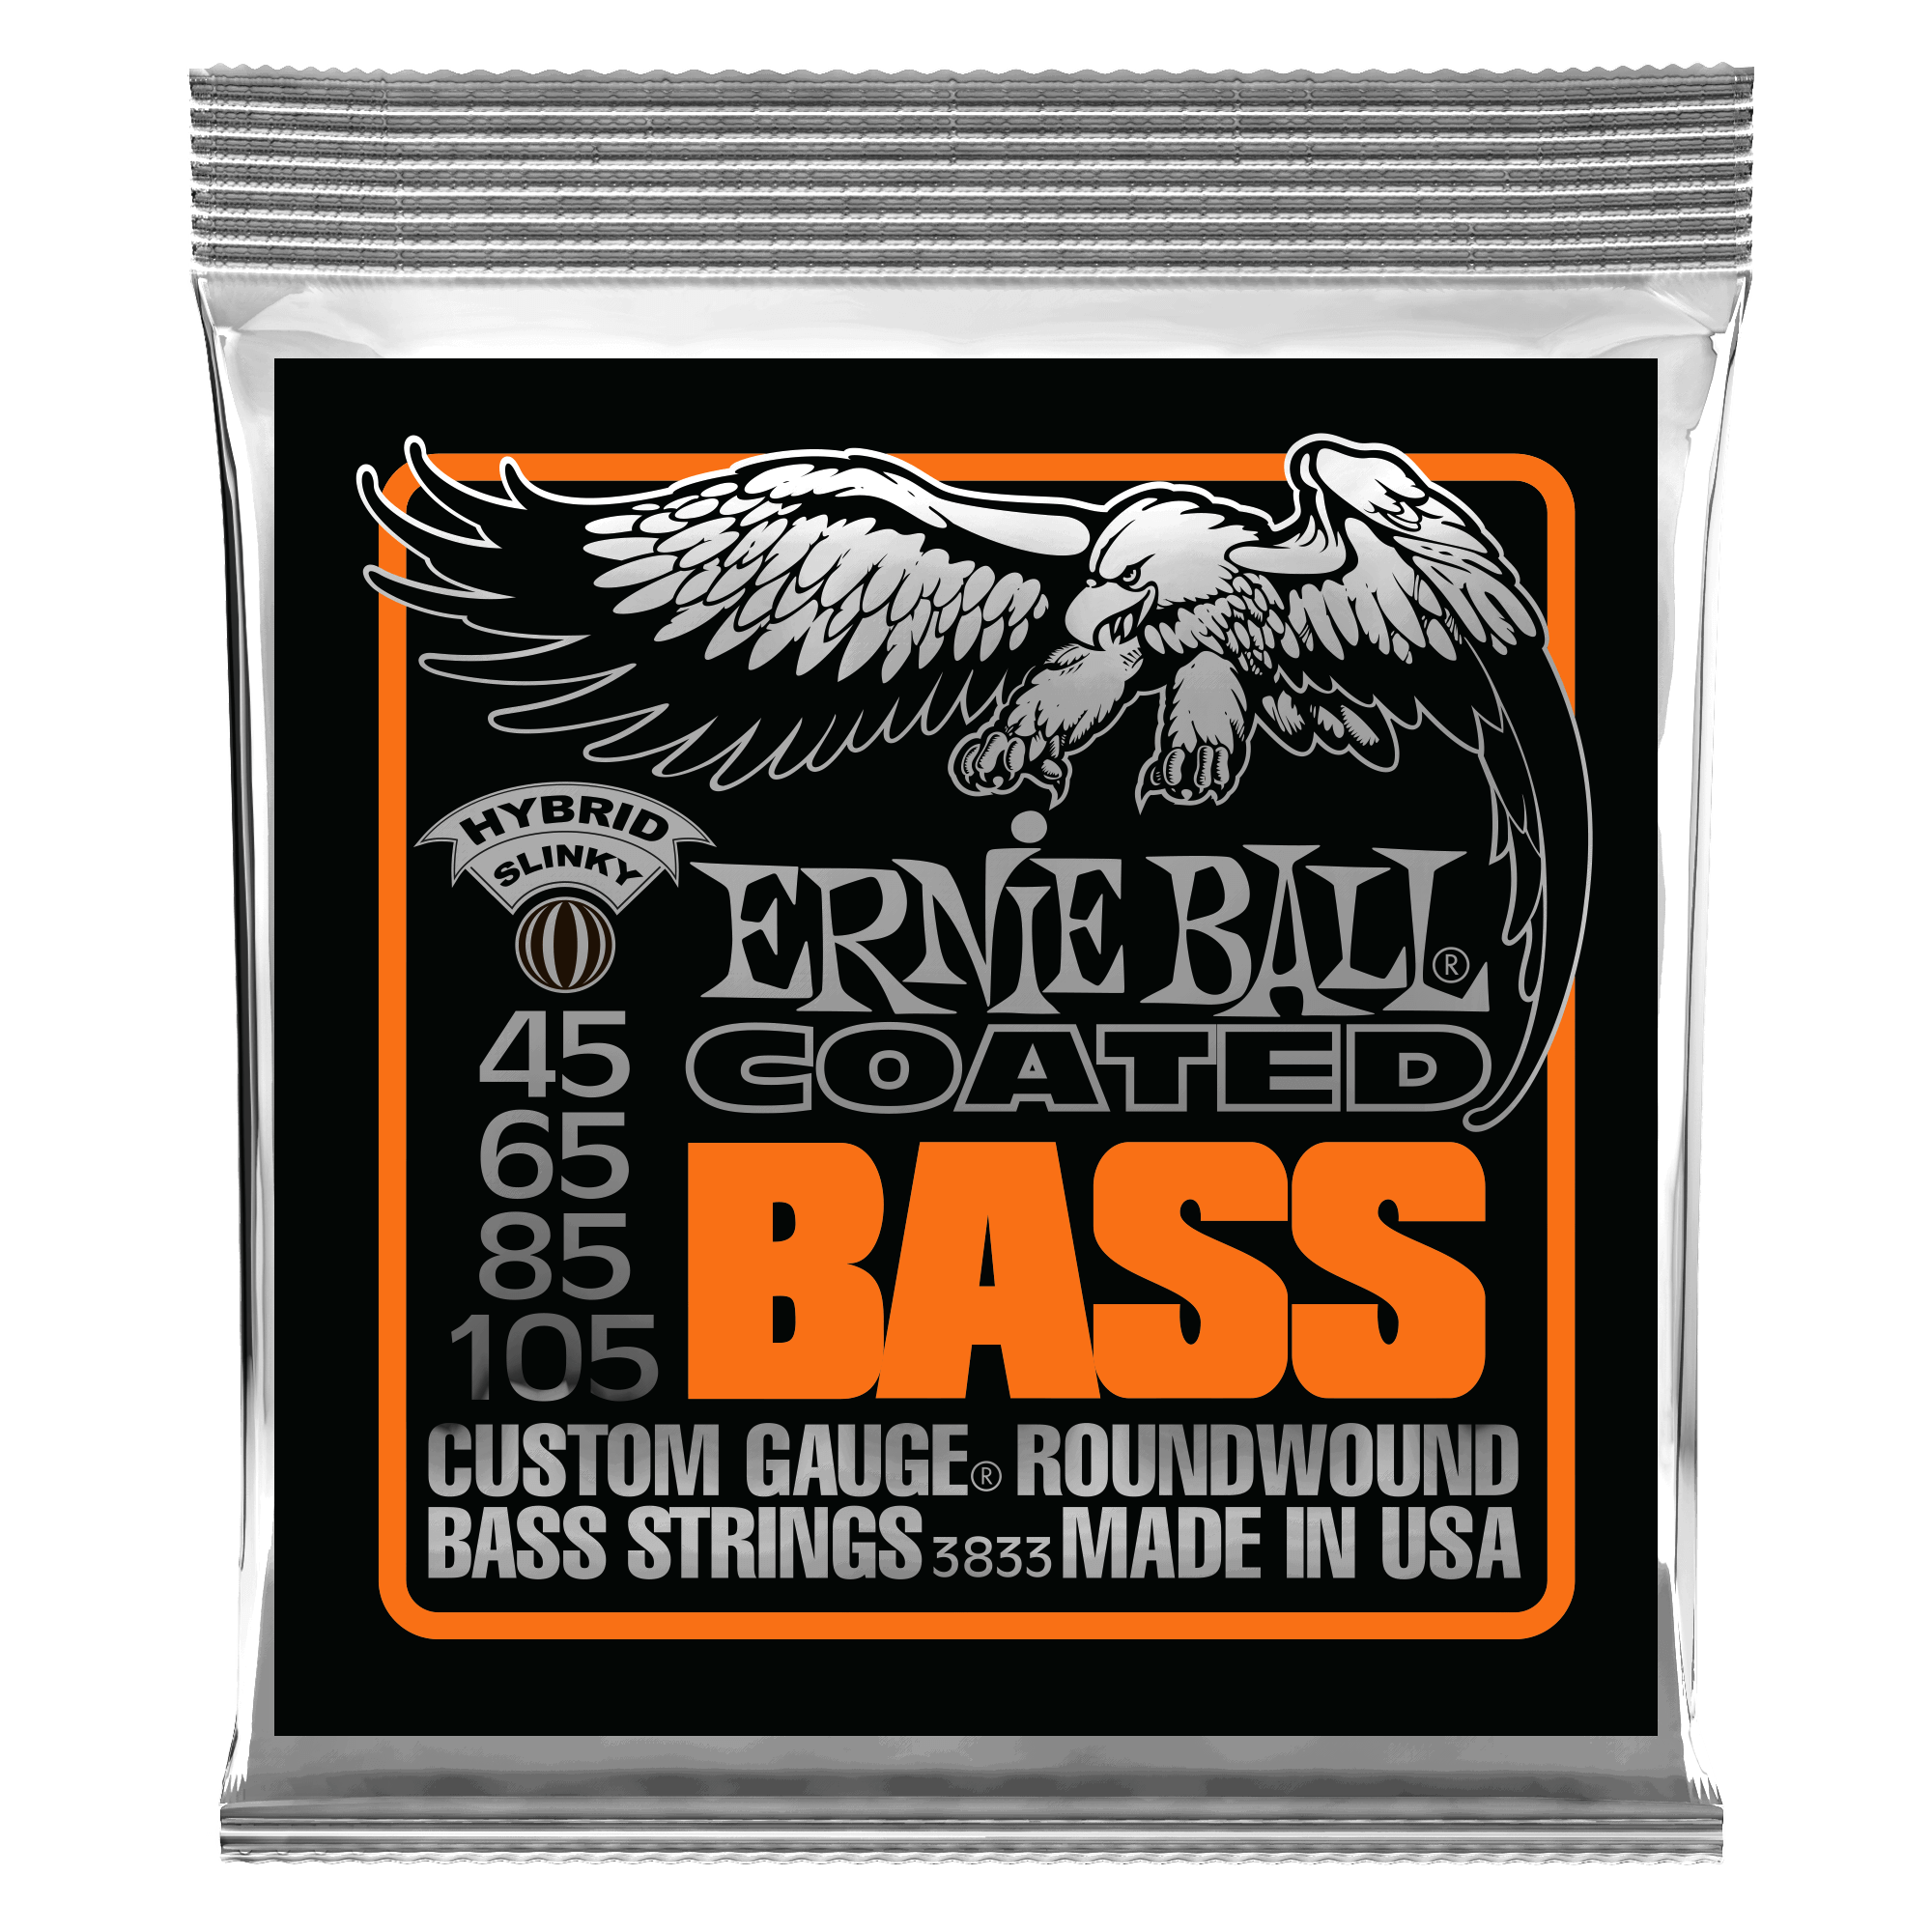 Ernie Ball Coated Bass Strings 45 - 105